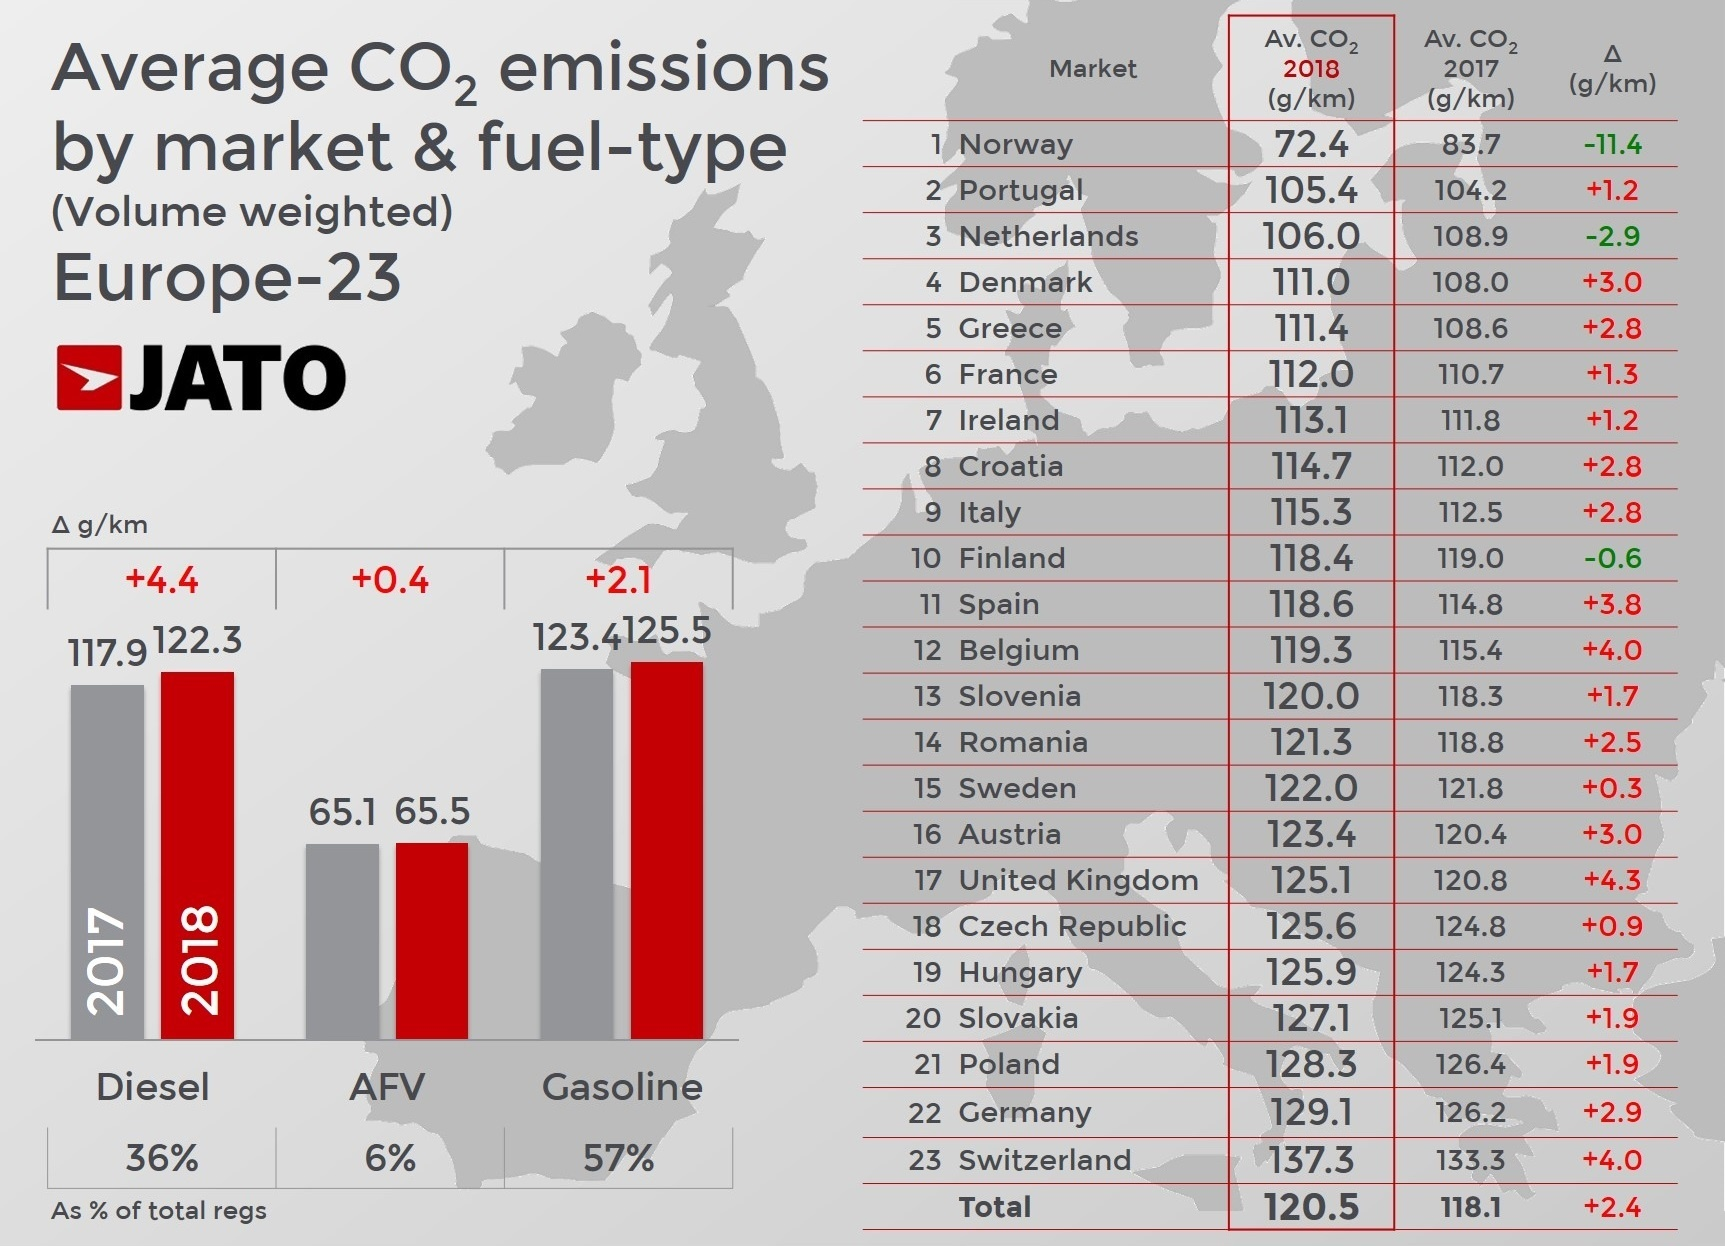 Co2 Emissions Rise To Highest Average Since 2014 As The Shift From